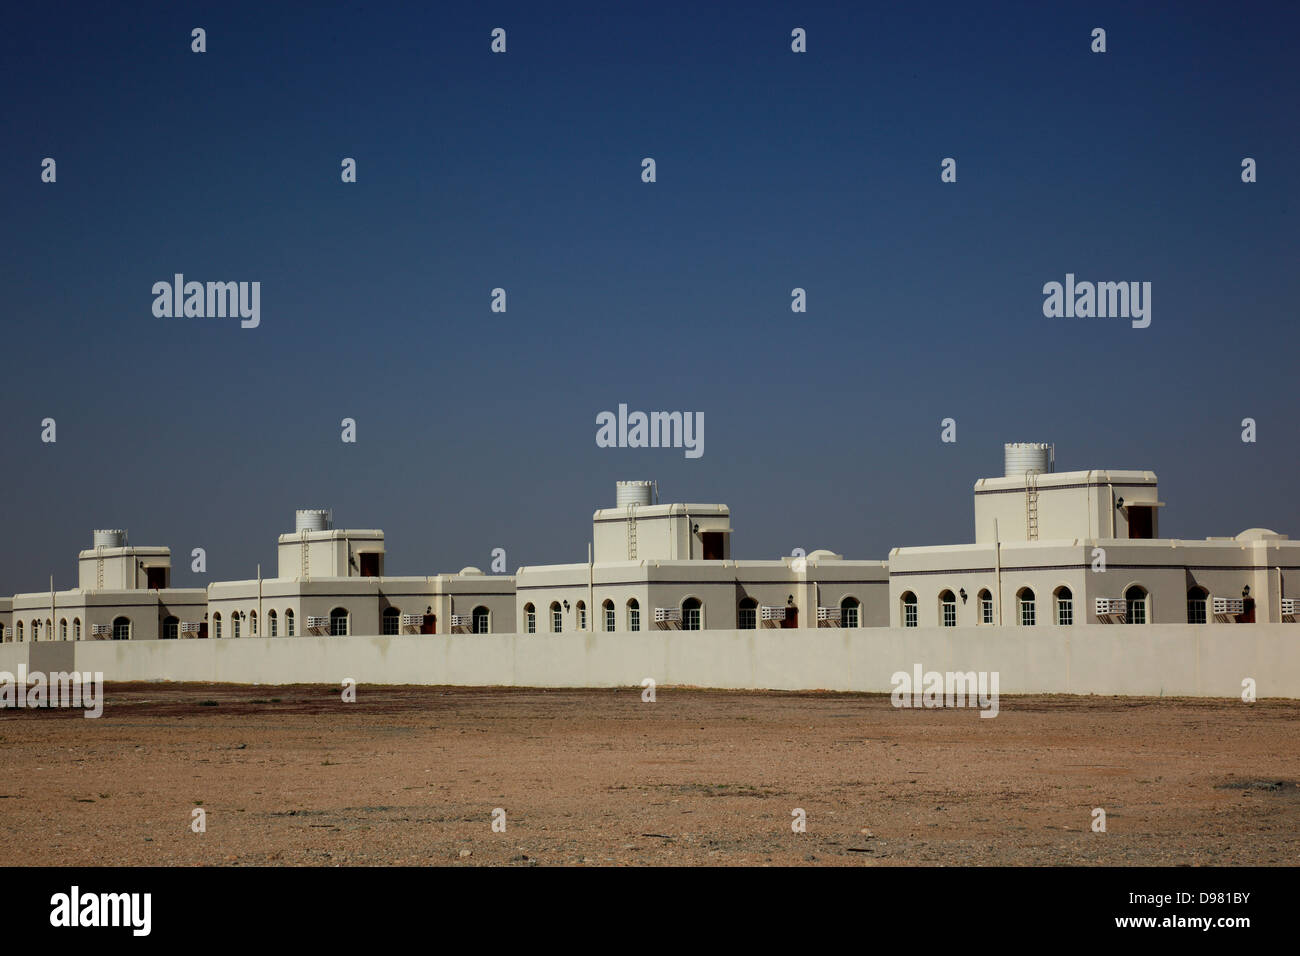 New building settlements, built by the state Oman for the resettlement of workers ?-lfelder, Oman - Stock Image